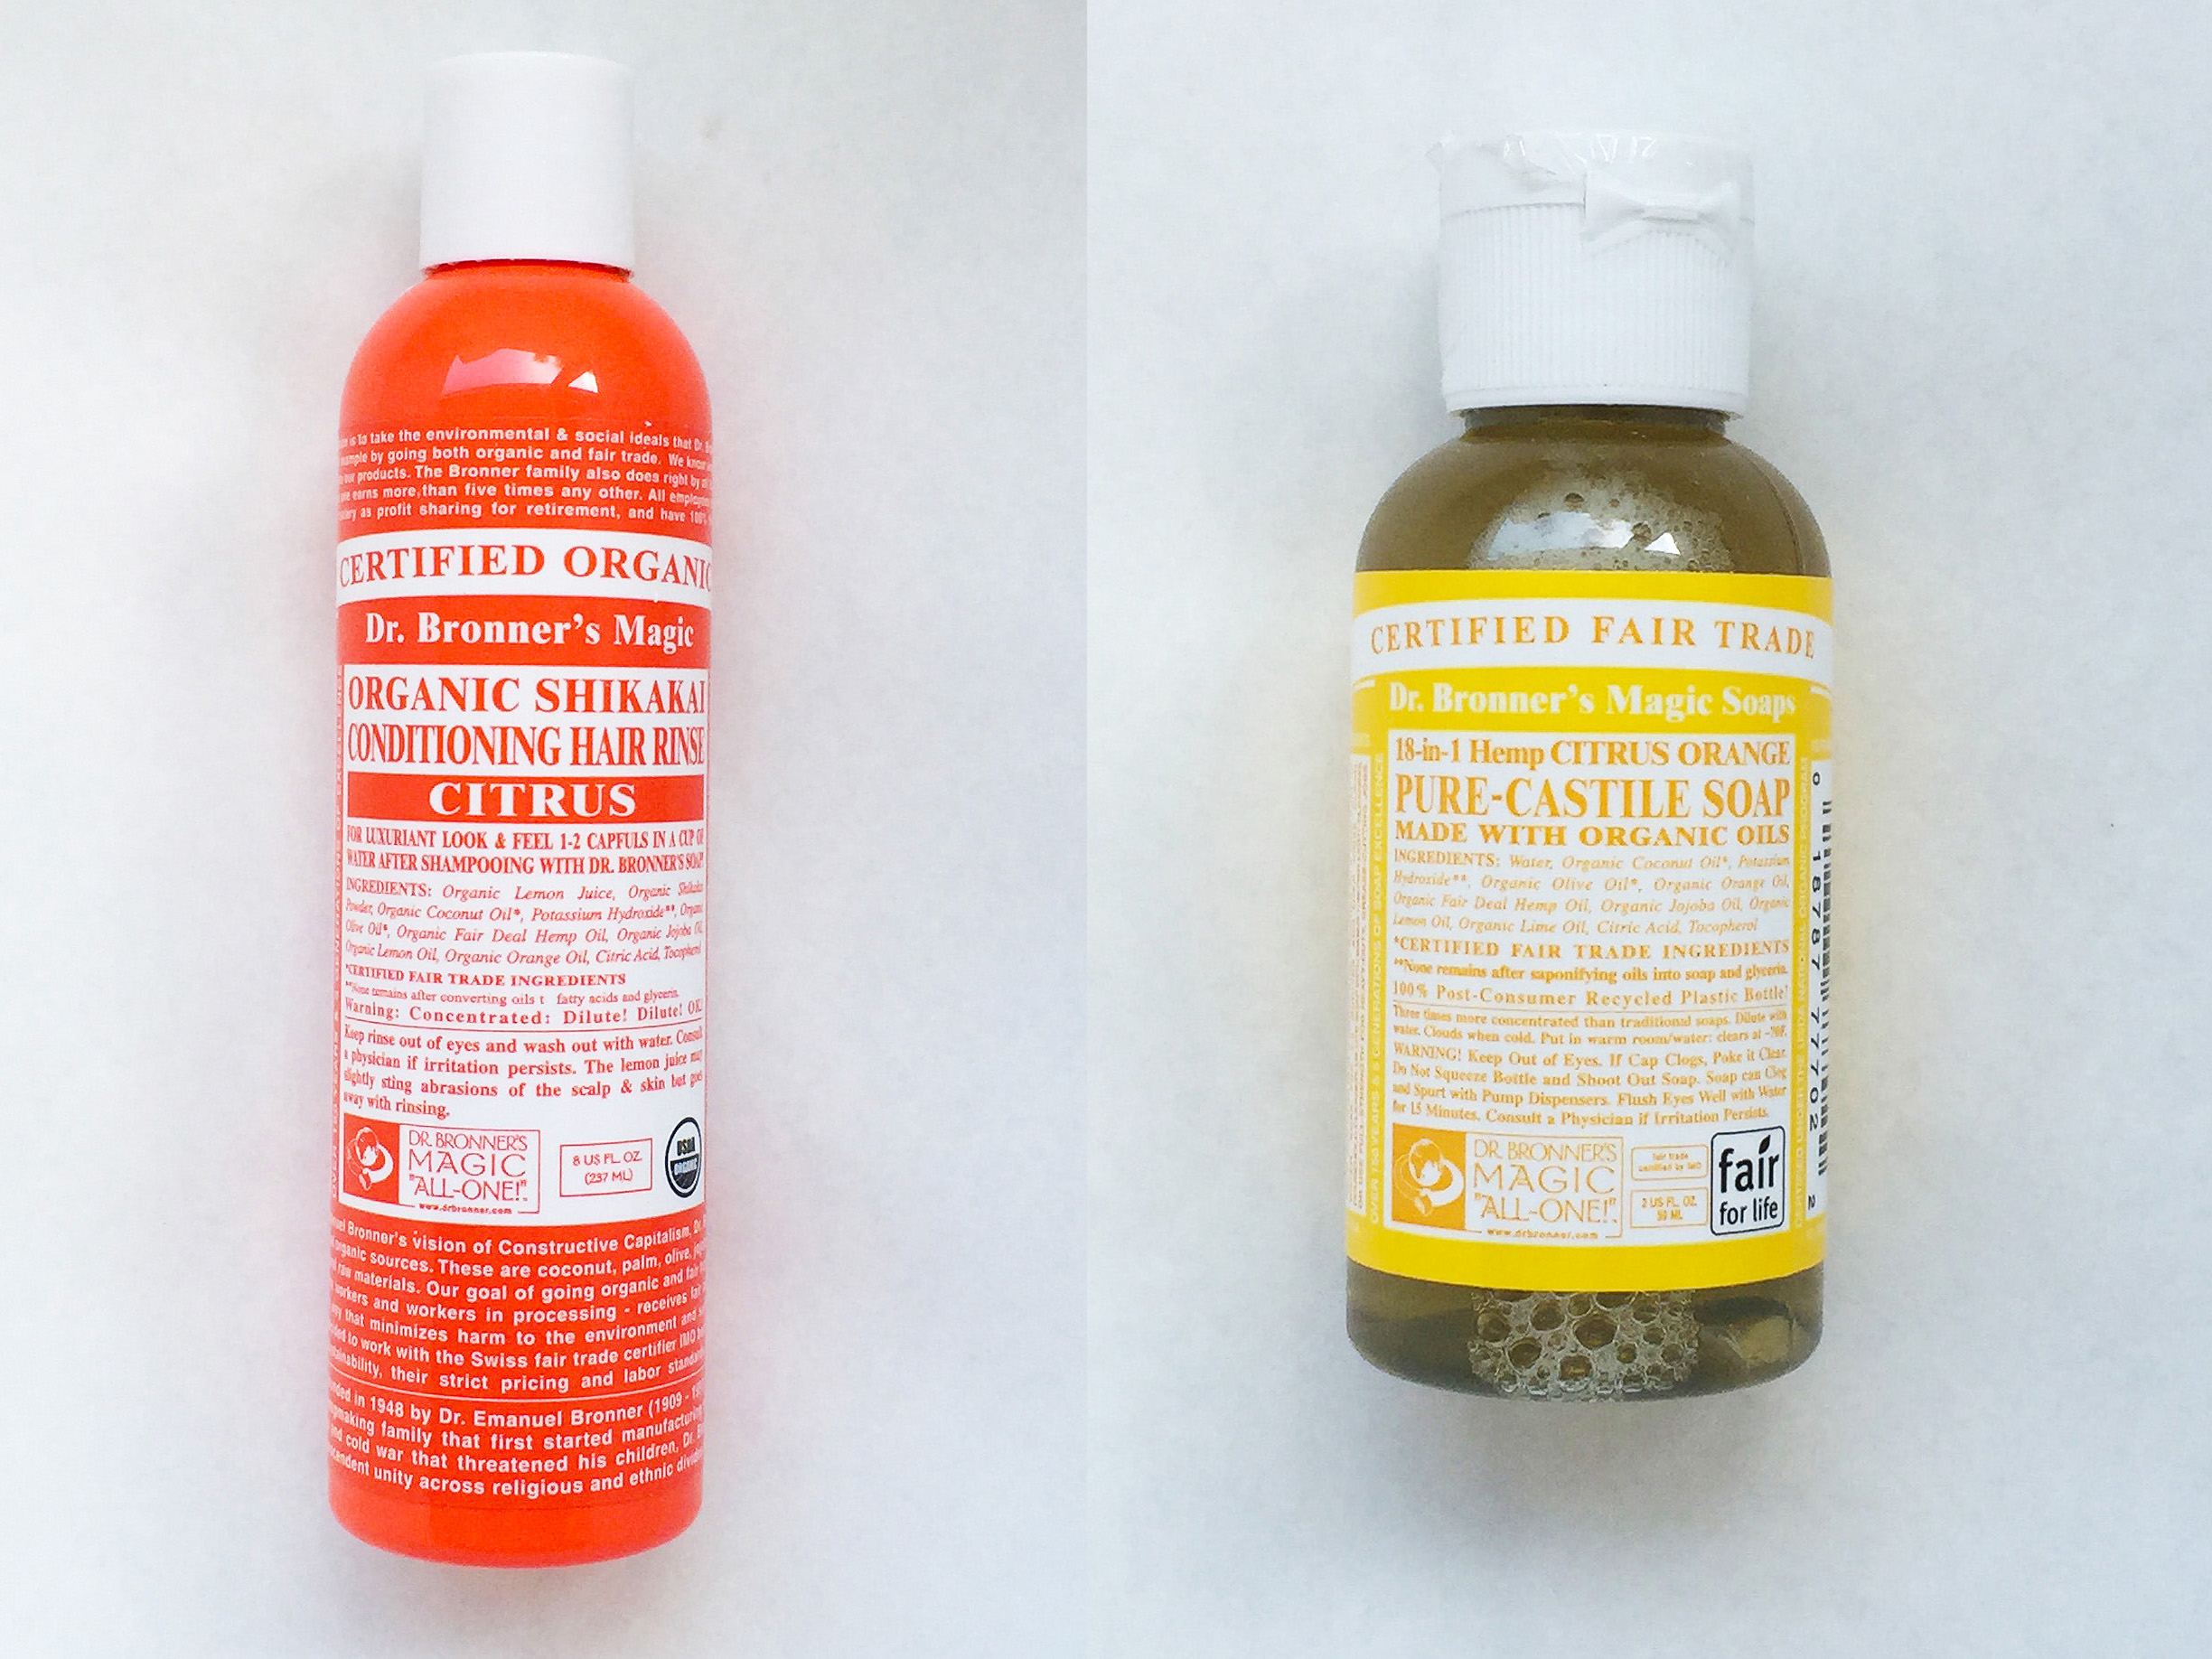 dr-bronners-review-castile-liquid-soap-citrus-conditioning-hair-rinse-6